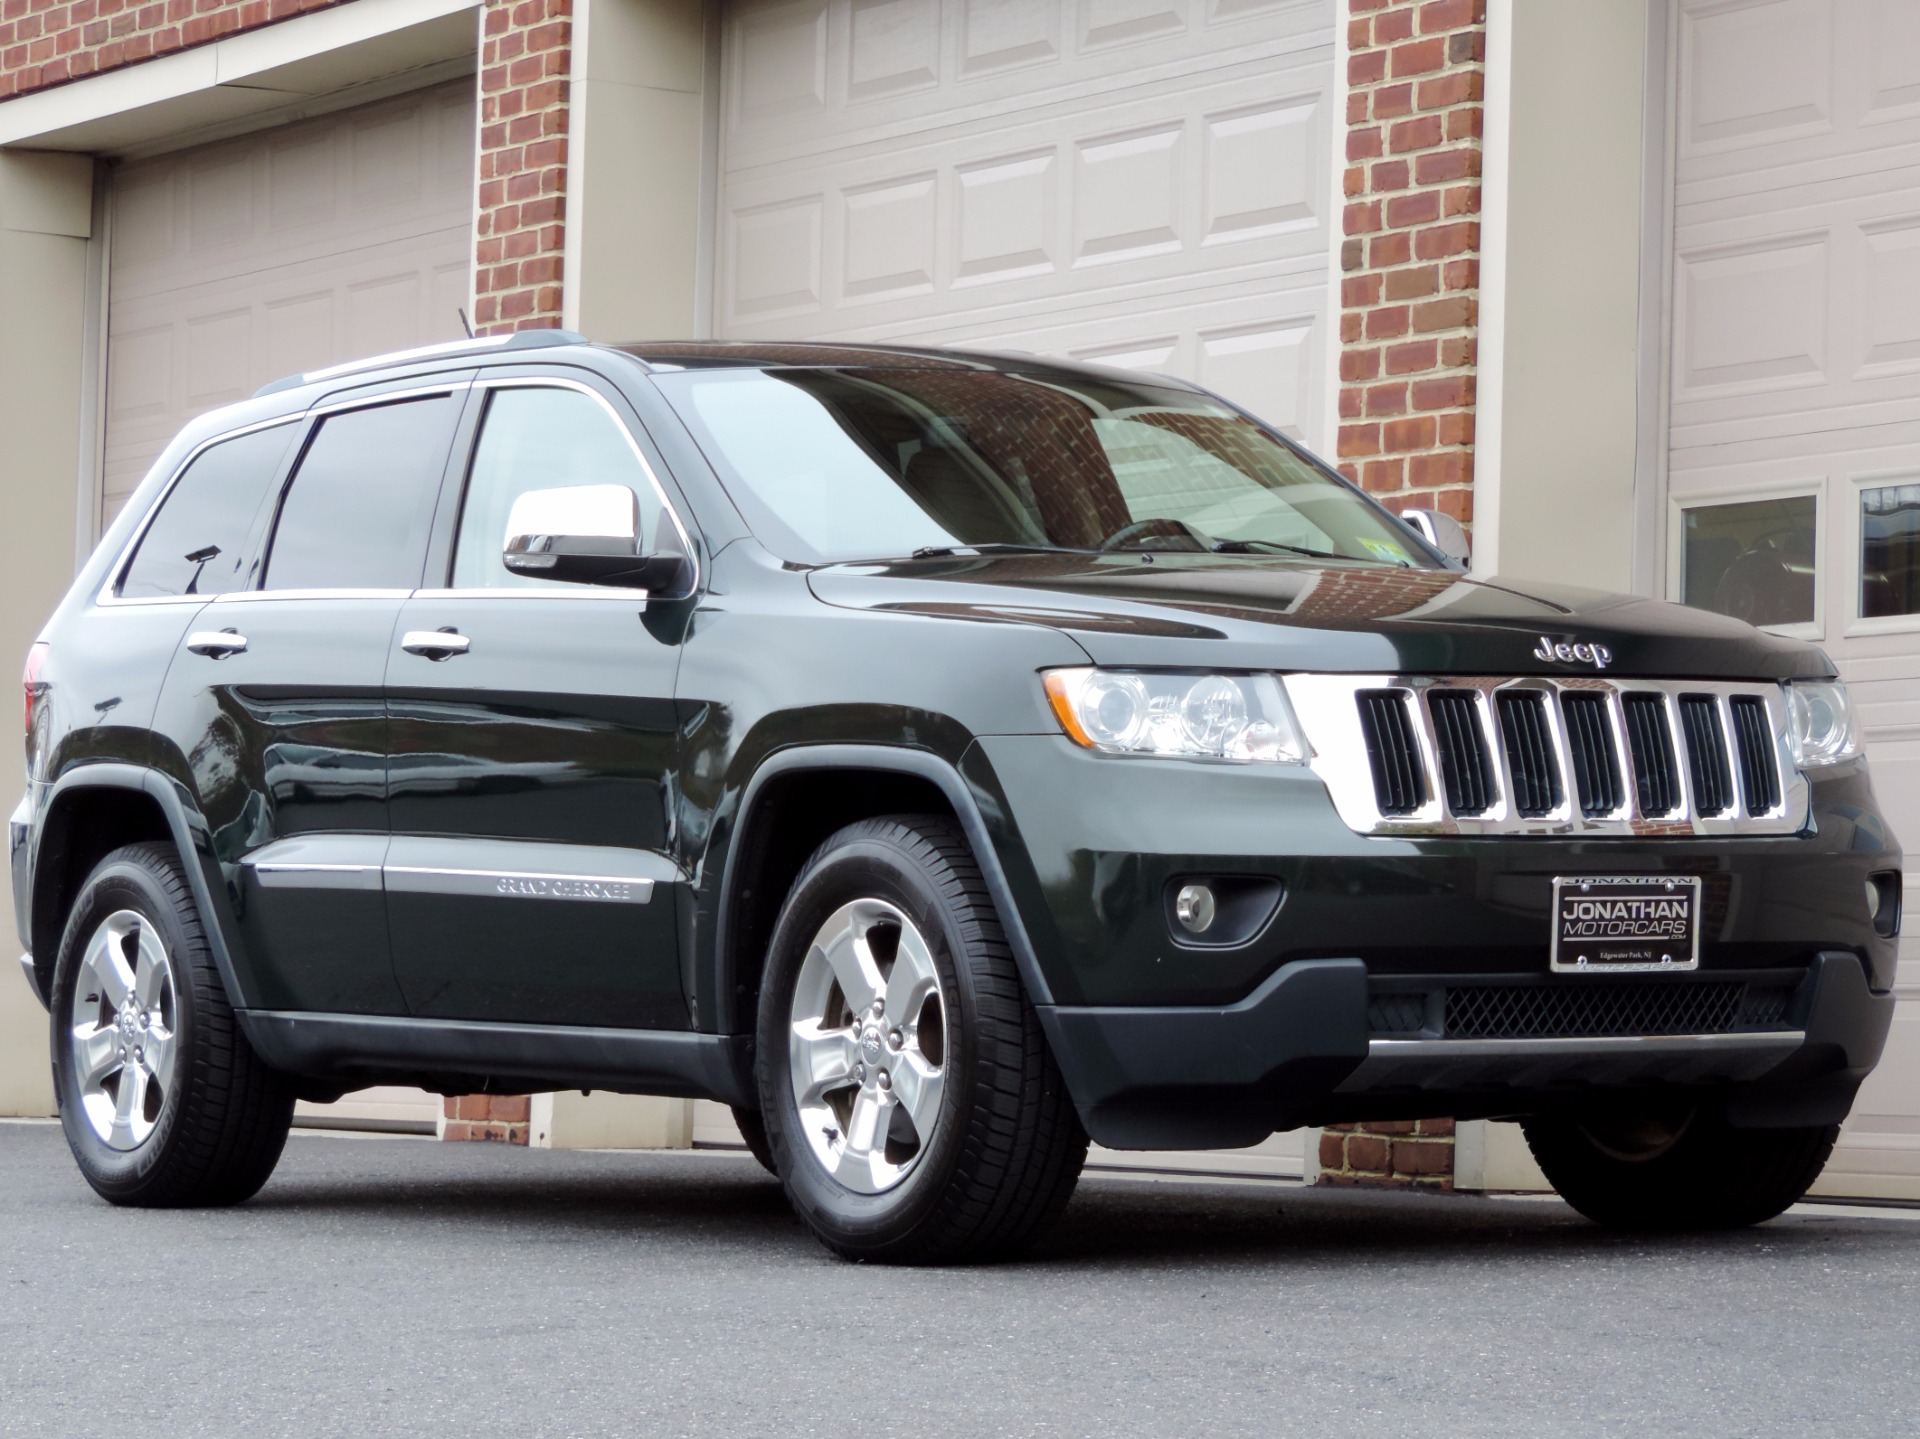 2011 jeep grand cherokee limited stock 552110 for sale near edgewater park nj nj jeep dealer. Black Bedroom Furniture Sets. Home Design Ideas